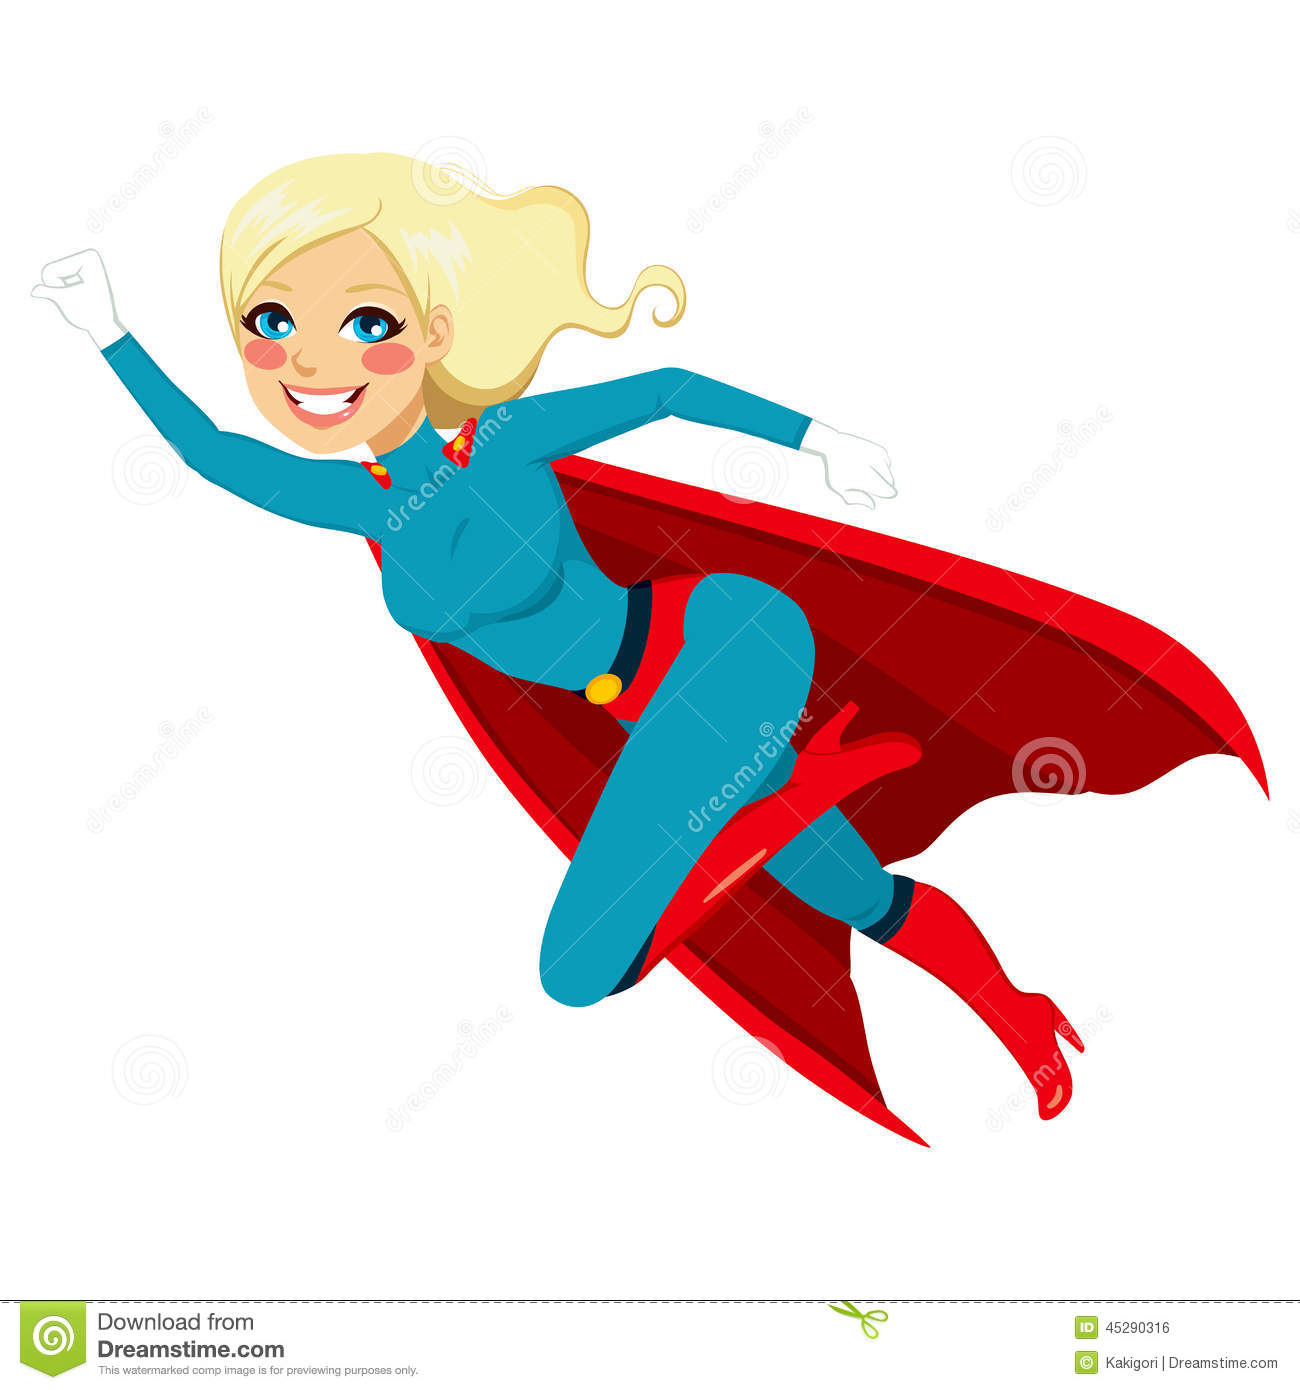 Blonde super hero girl flying fast in blue and red costume with cape.